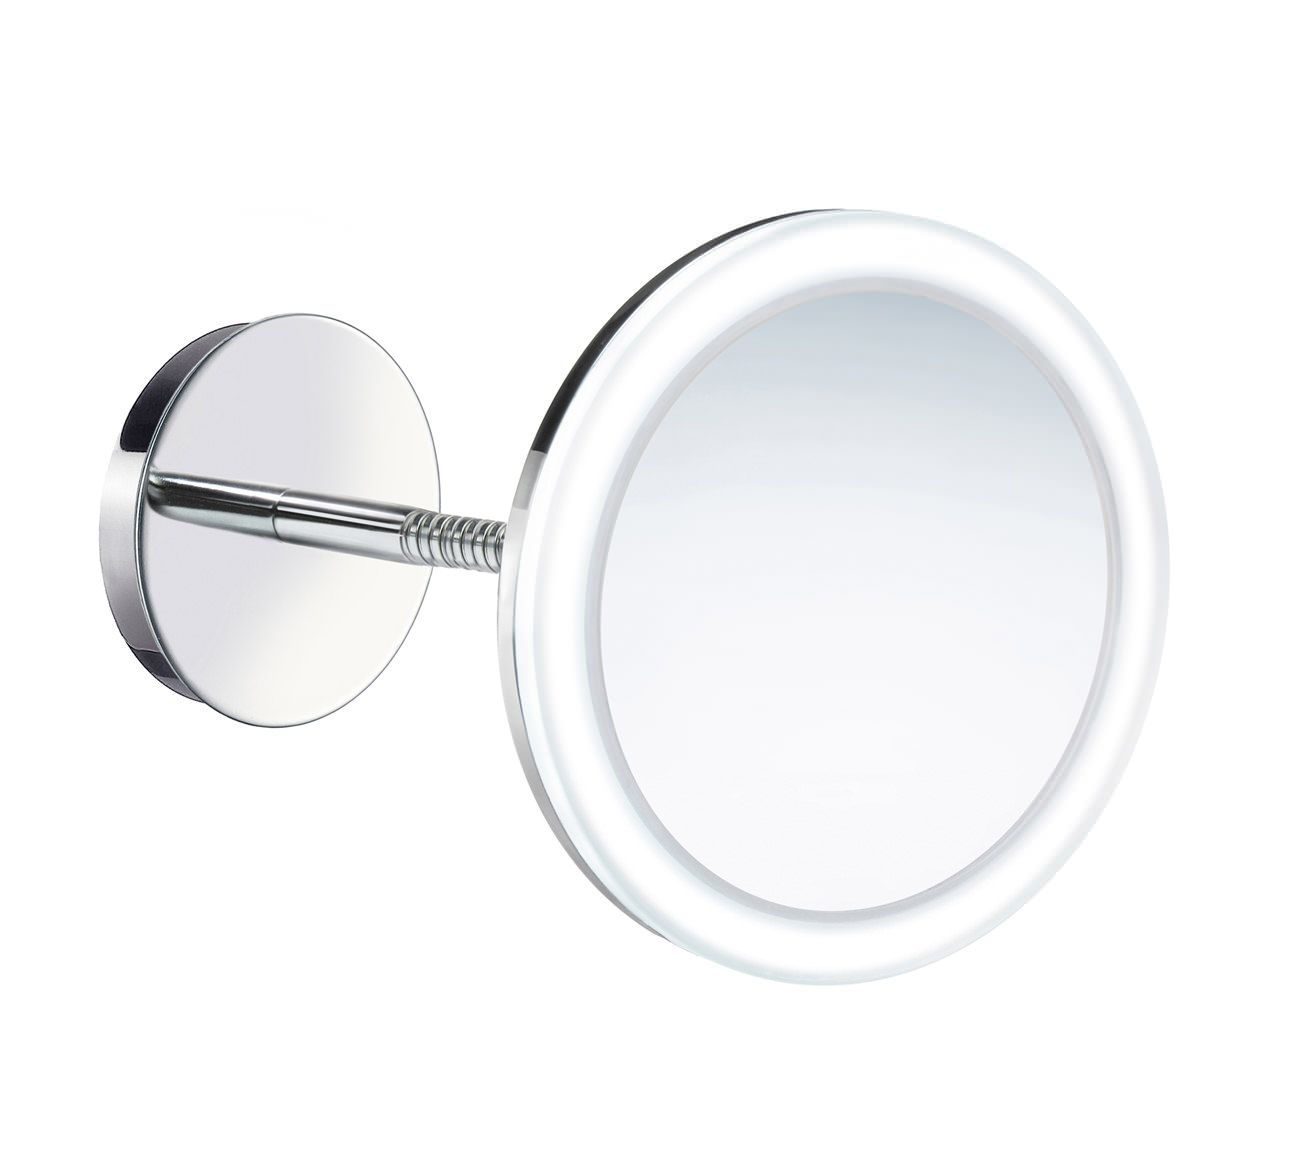 Smedbo Outline Wallmounted Swing Arm LED Shaving And Make-Up Mirror ...